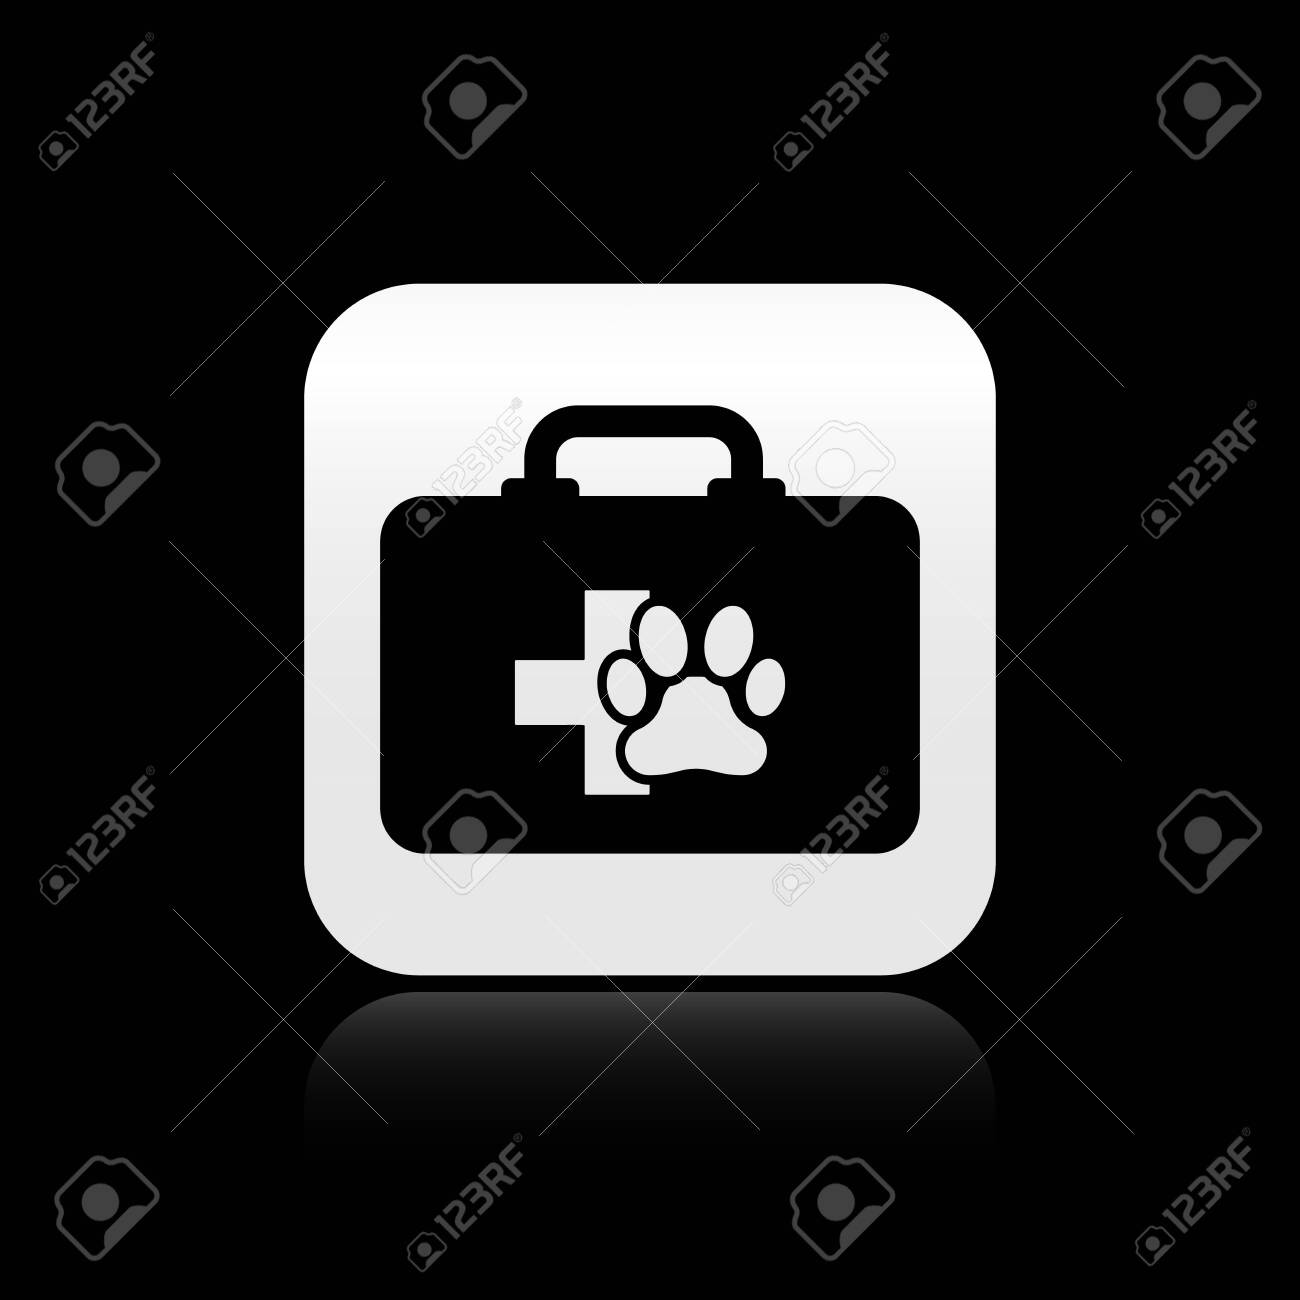 Black Pet first aid kit icon isolated on black background  Dog